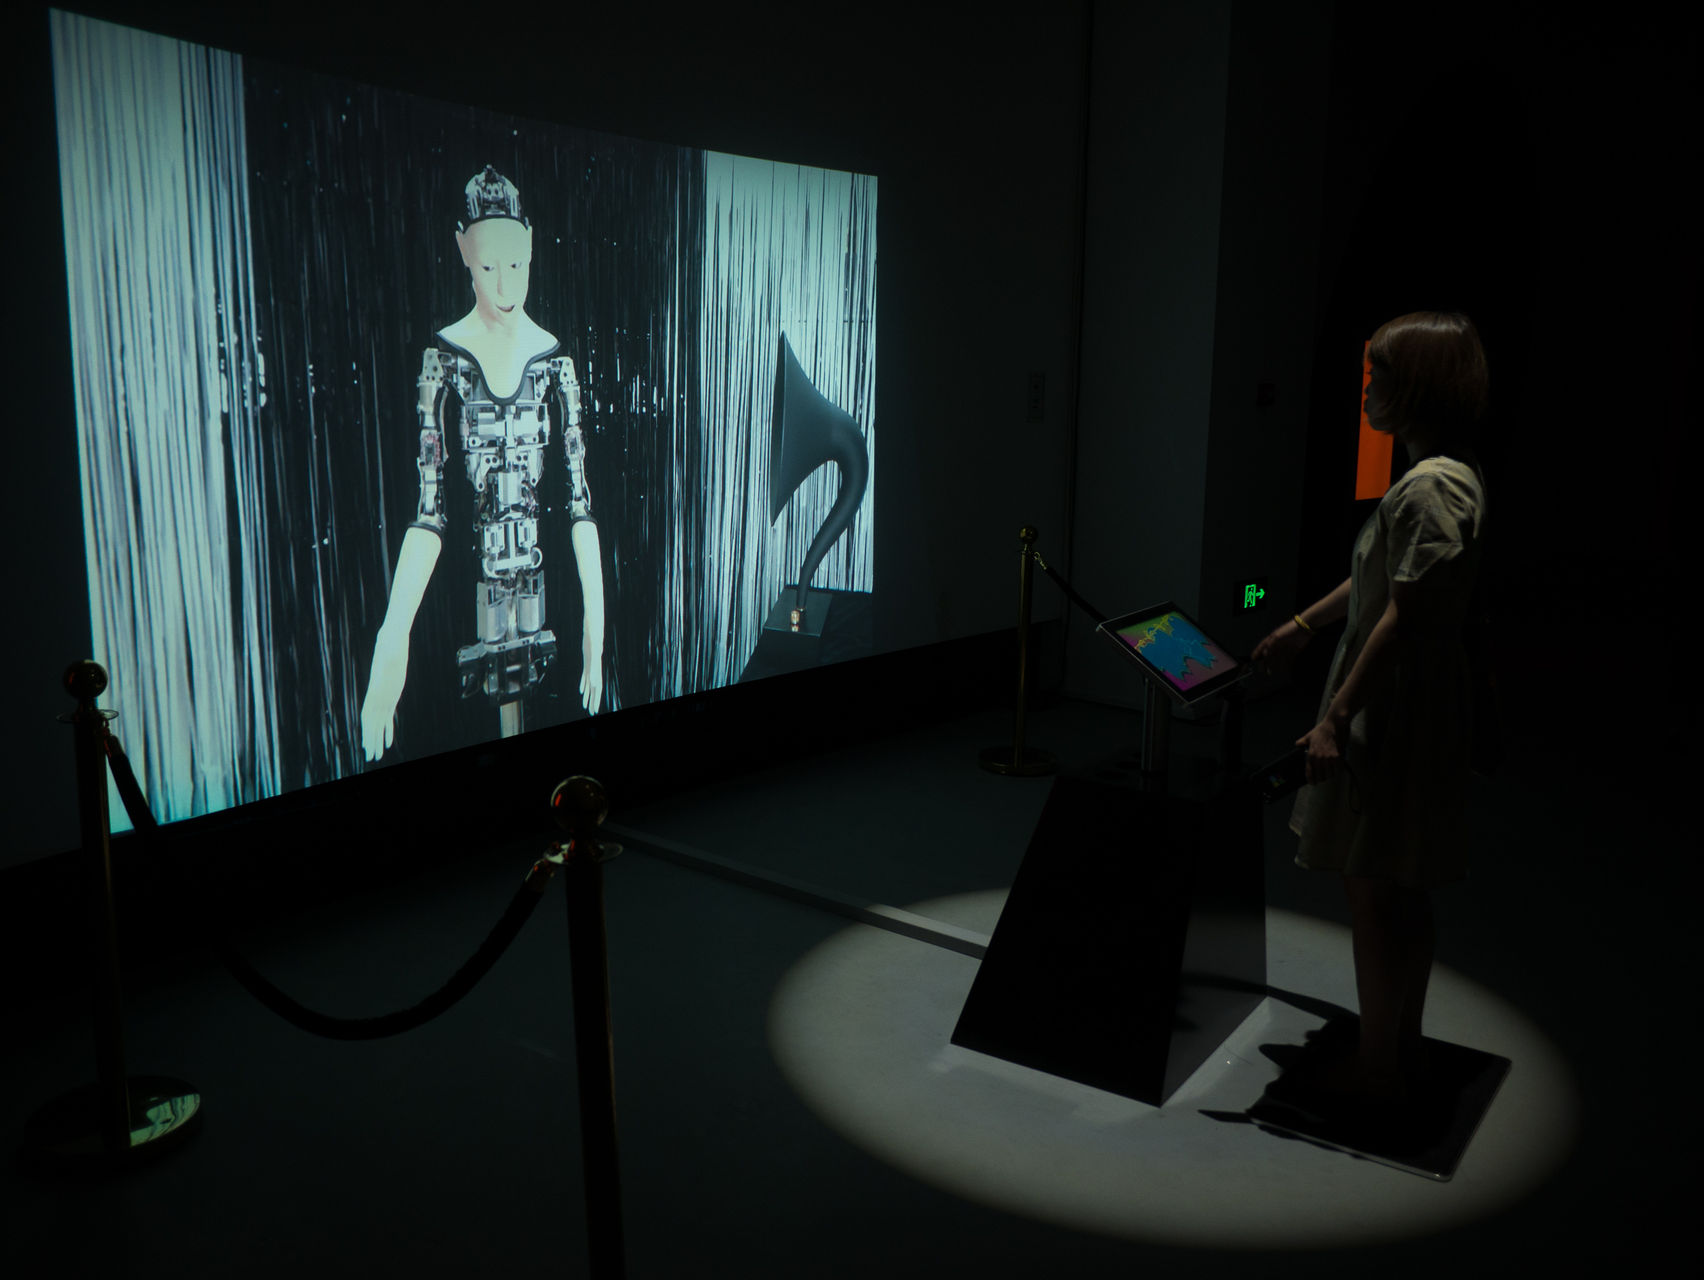 Propositions Towards The Future – Nine Tomorrows: Digital Art Exhibition in Hangzhou